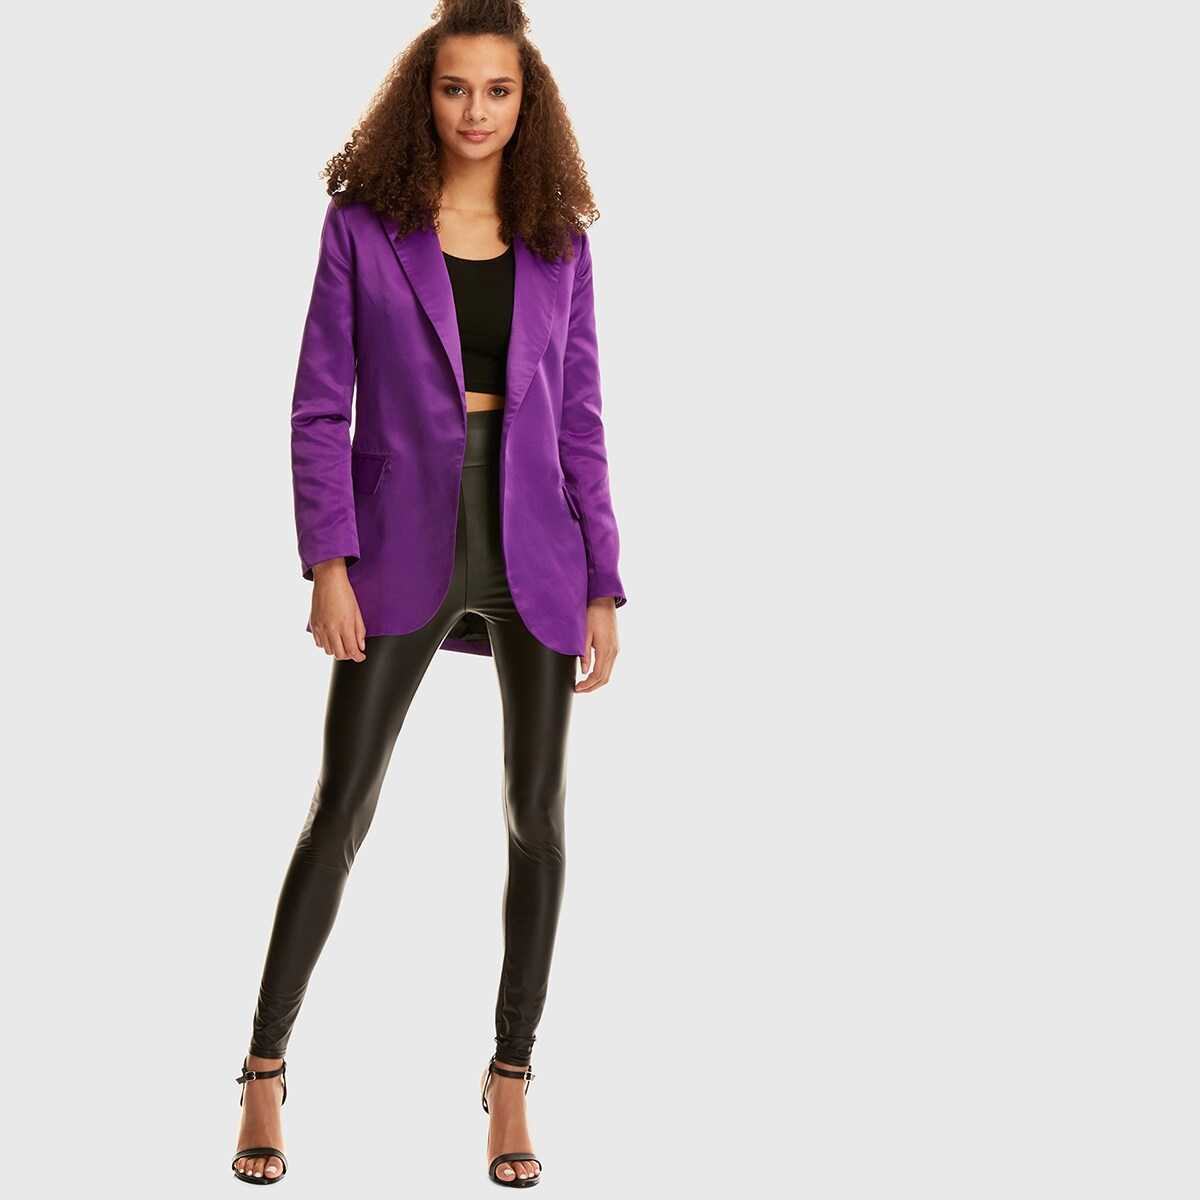 Shawl Collar Pocket Side Blazer - Shein - GOOFASH